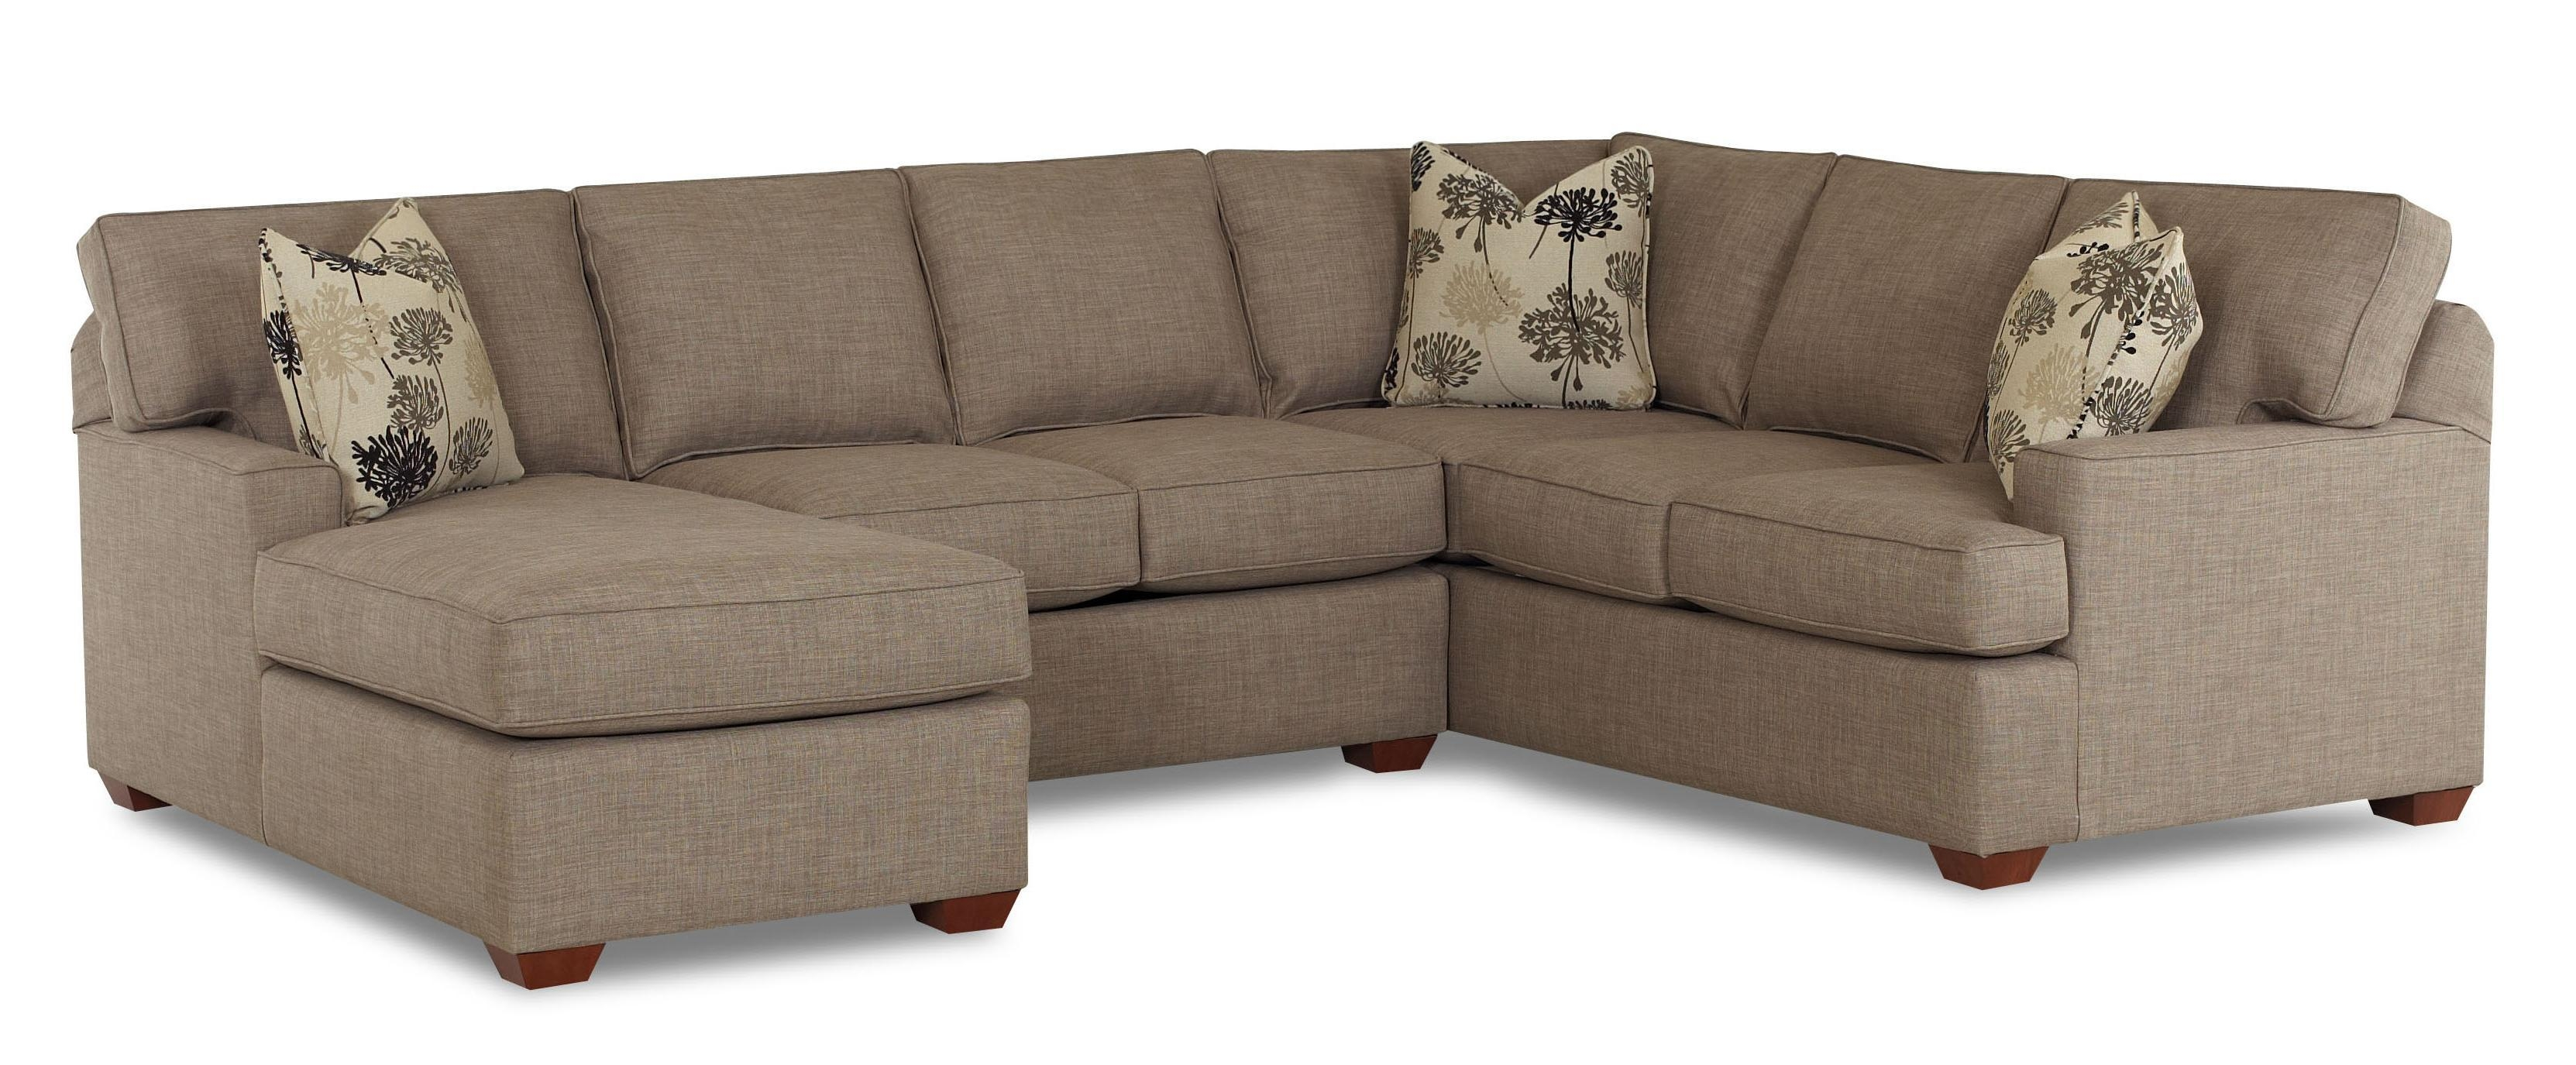 Sofas Center : 34 Unusual Most Comfortable Sectional Sofa Pictures In Unusual Sofa (Image 4 of 20)